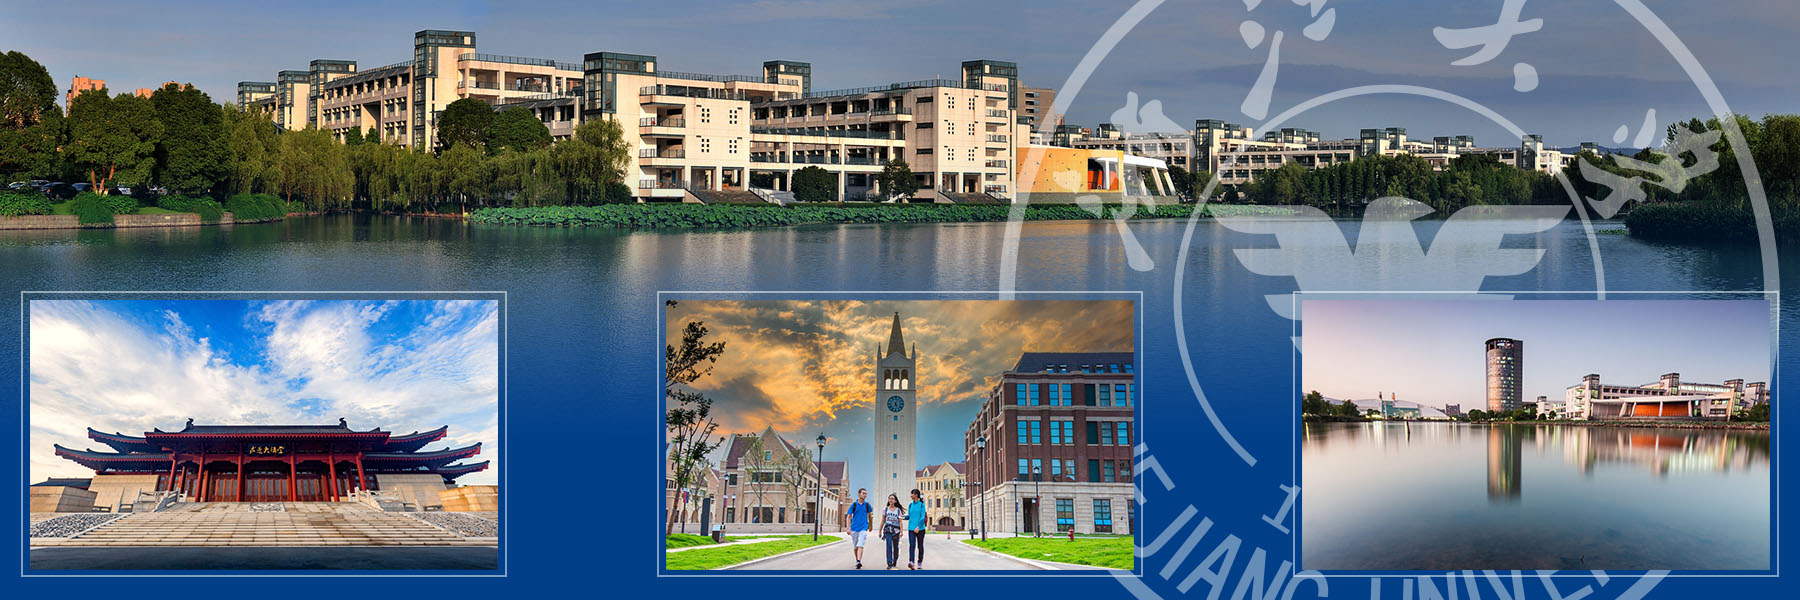 Postdoc Research Fellow in Civil/Structural Engineering at